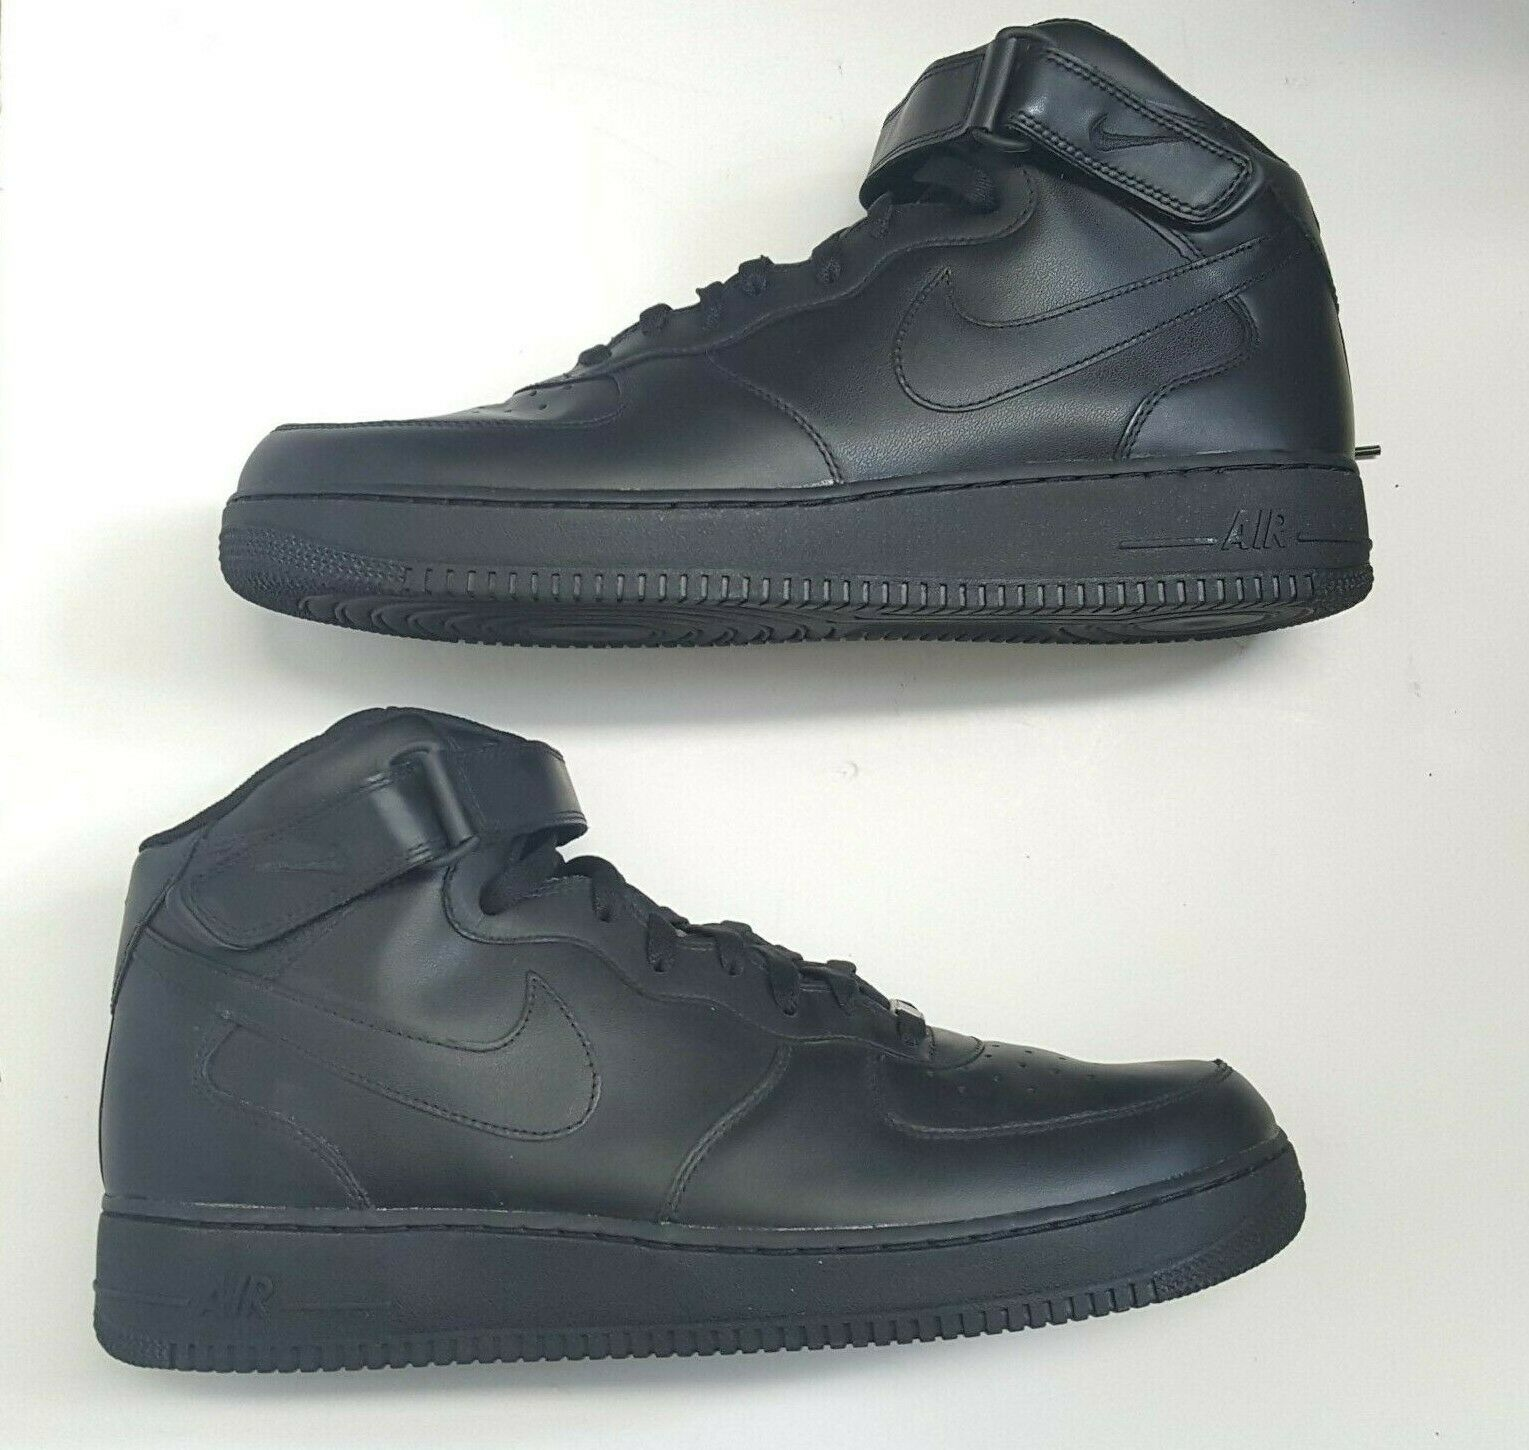 Nike Air Force 1 Mid '07 Mens 315123-001 Black Leather Athletic shoes Size 14